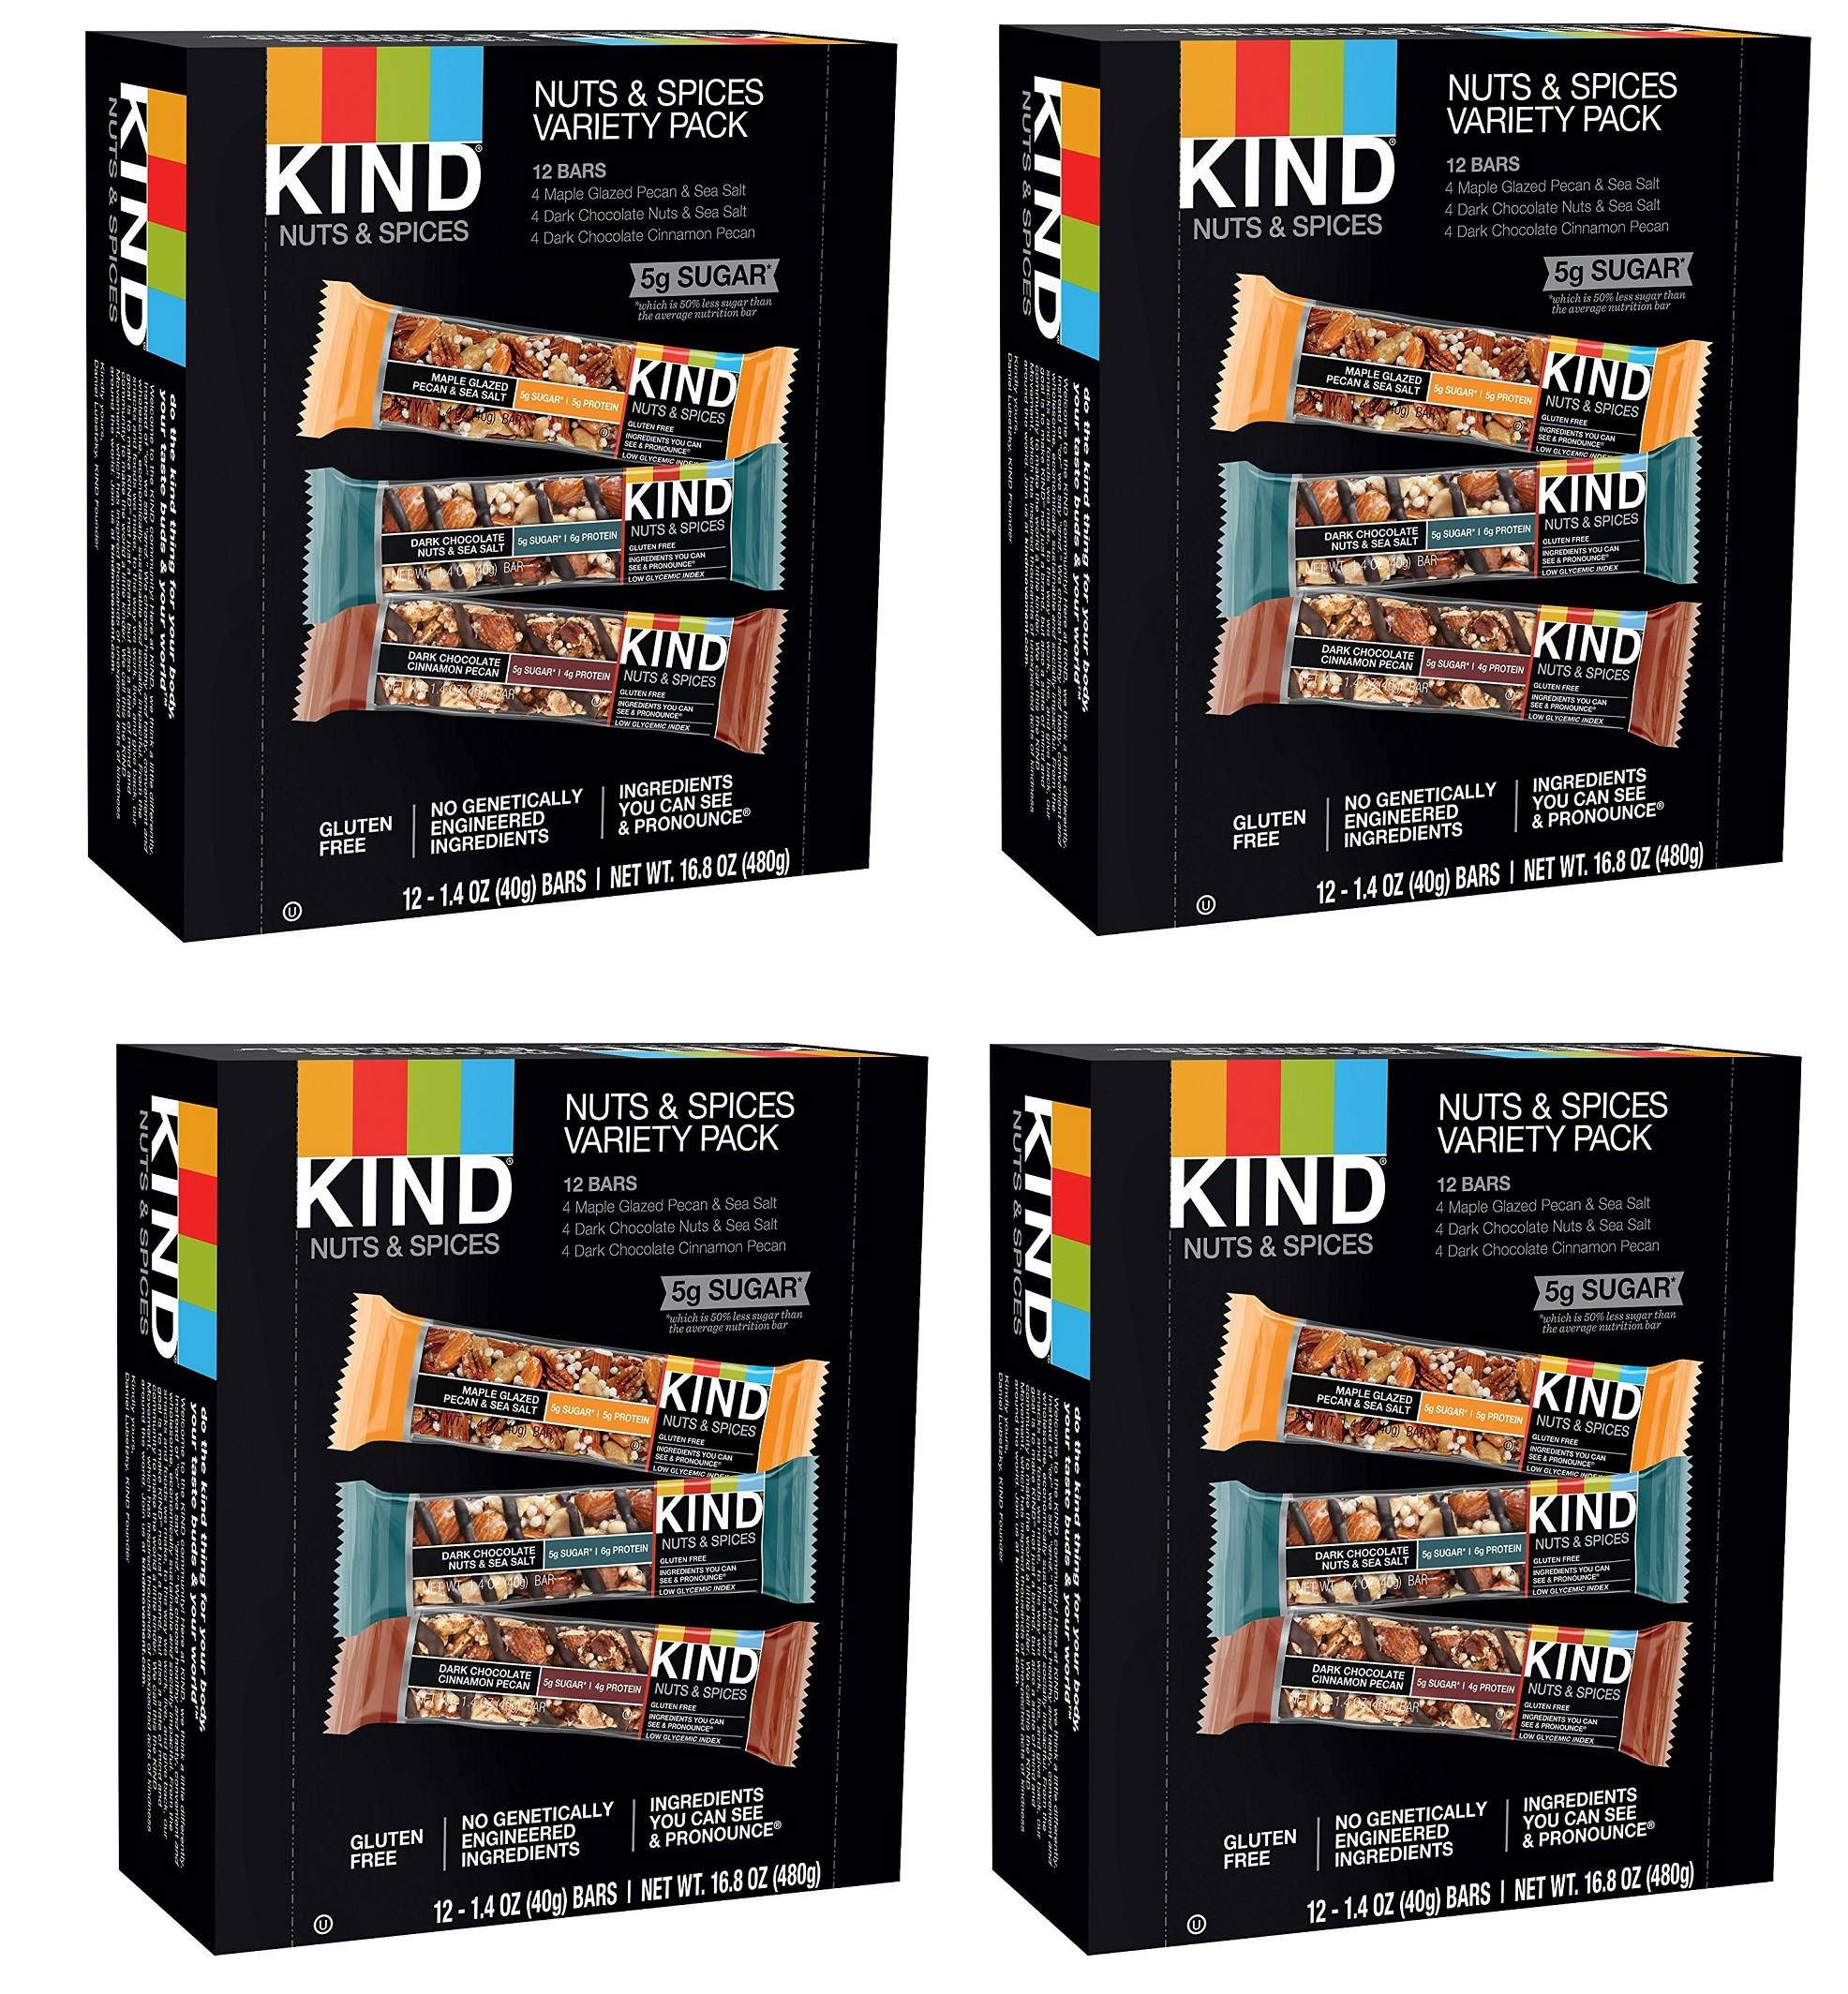 KIND Bars, Nuts and Spices Variety Pack, Gluten Free, 1.4oz (48 Bars) by  (Image #1)